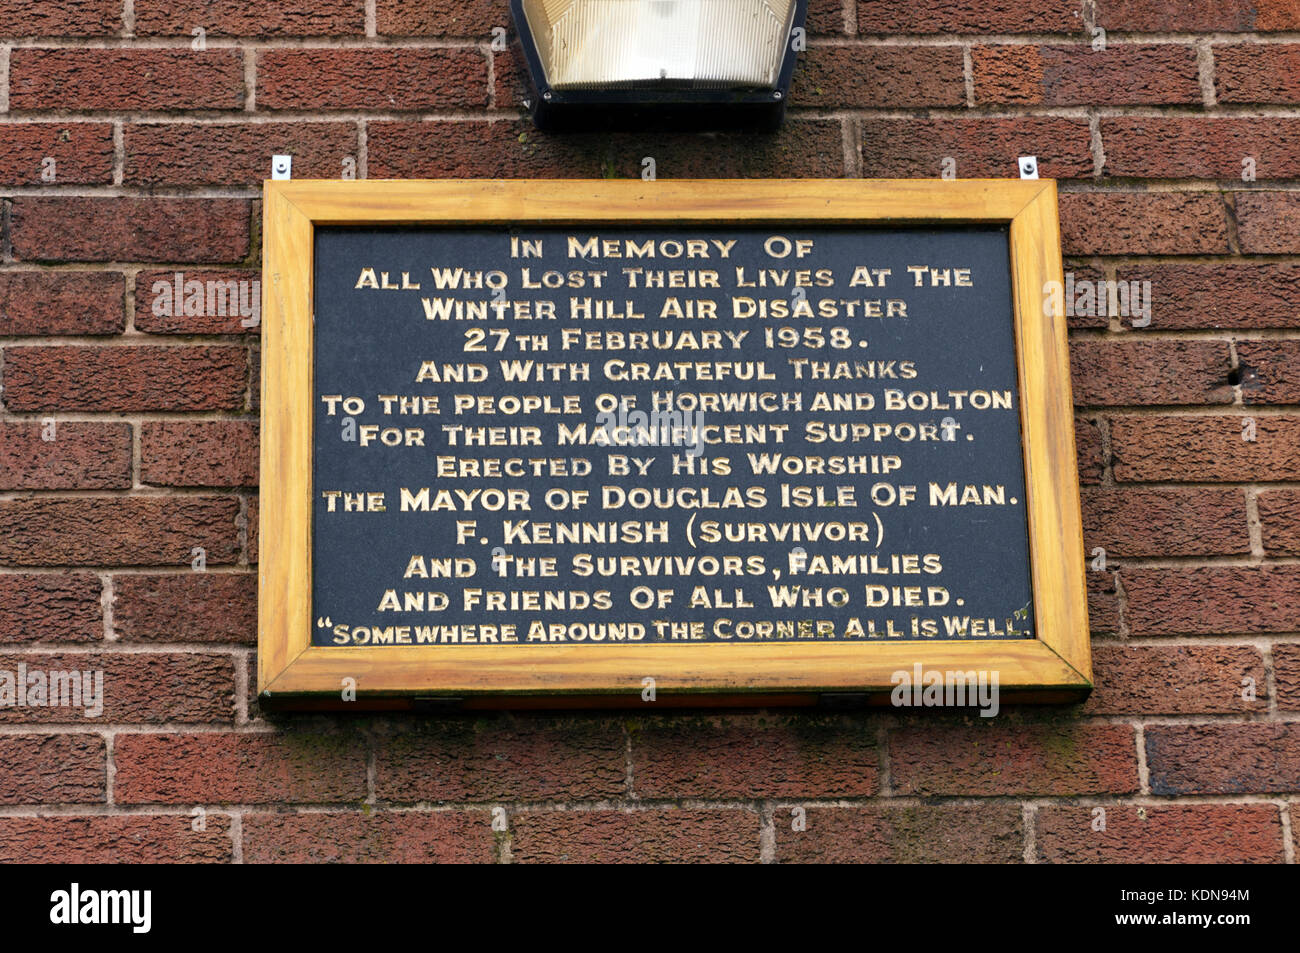 Winter Hill Air Disaster Memorial Plaque - Stock Image